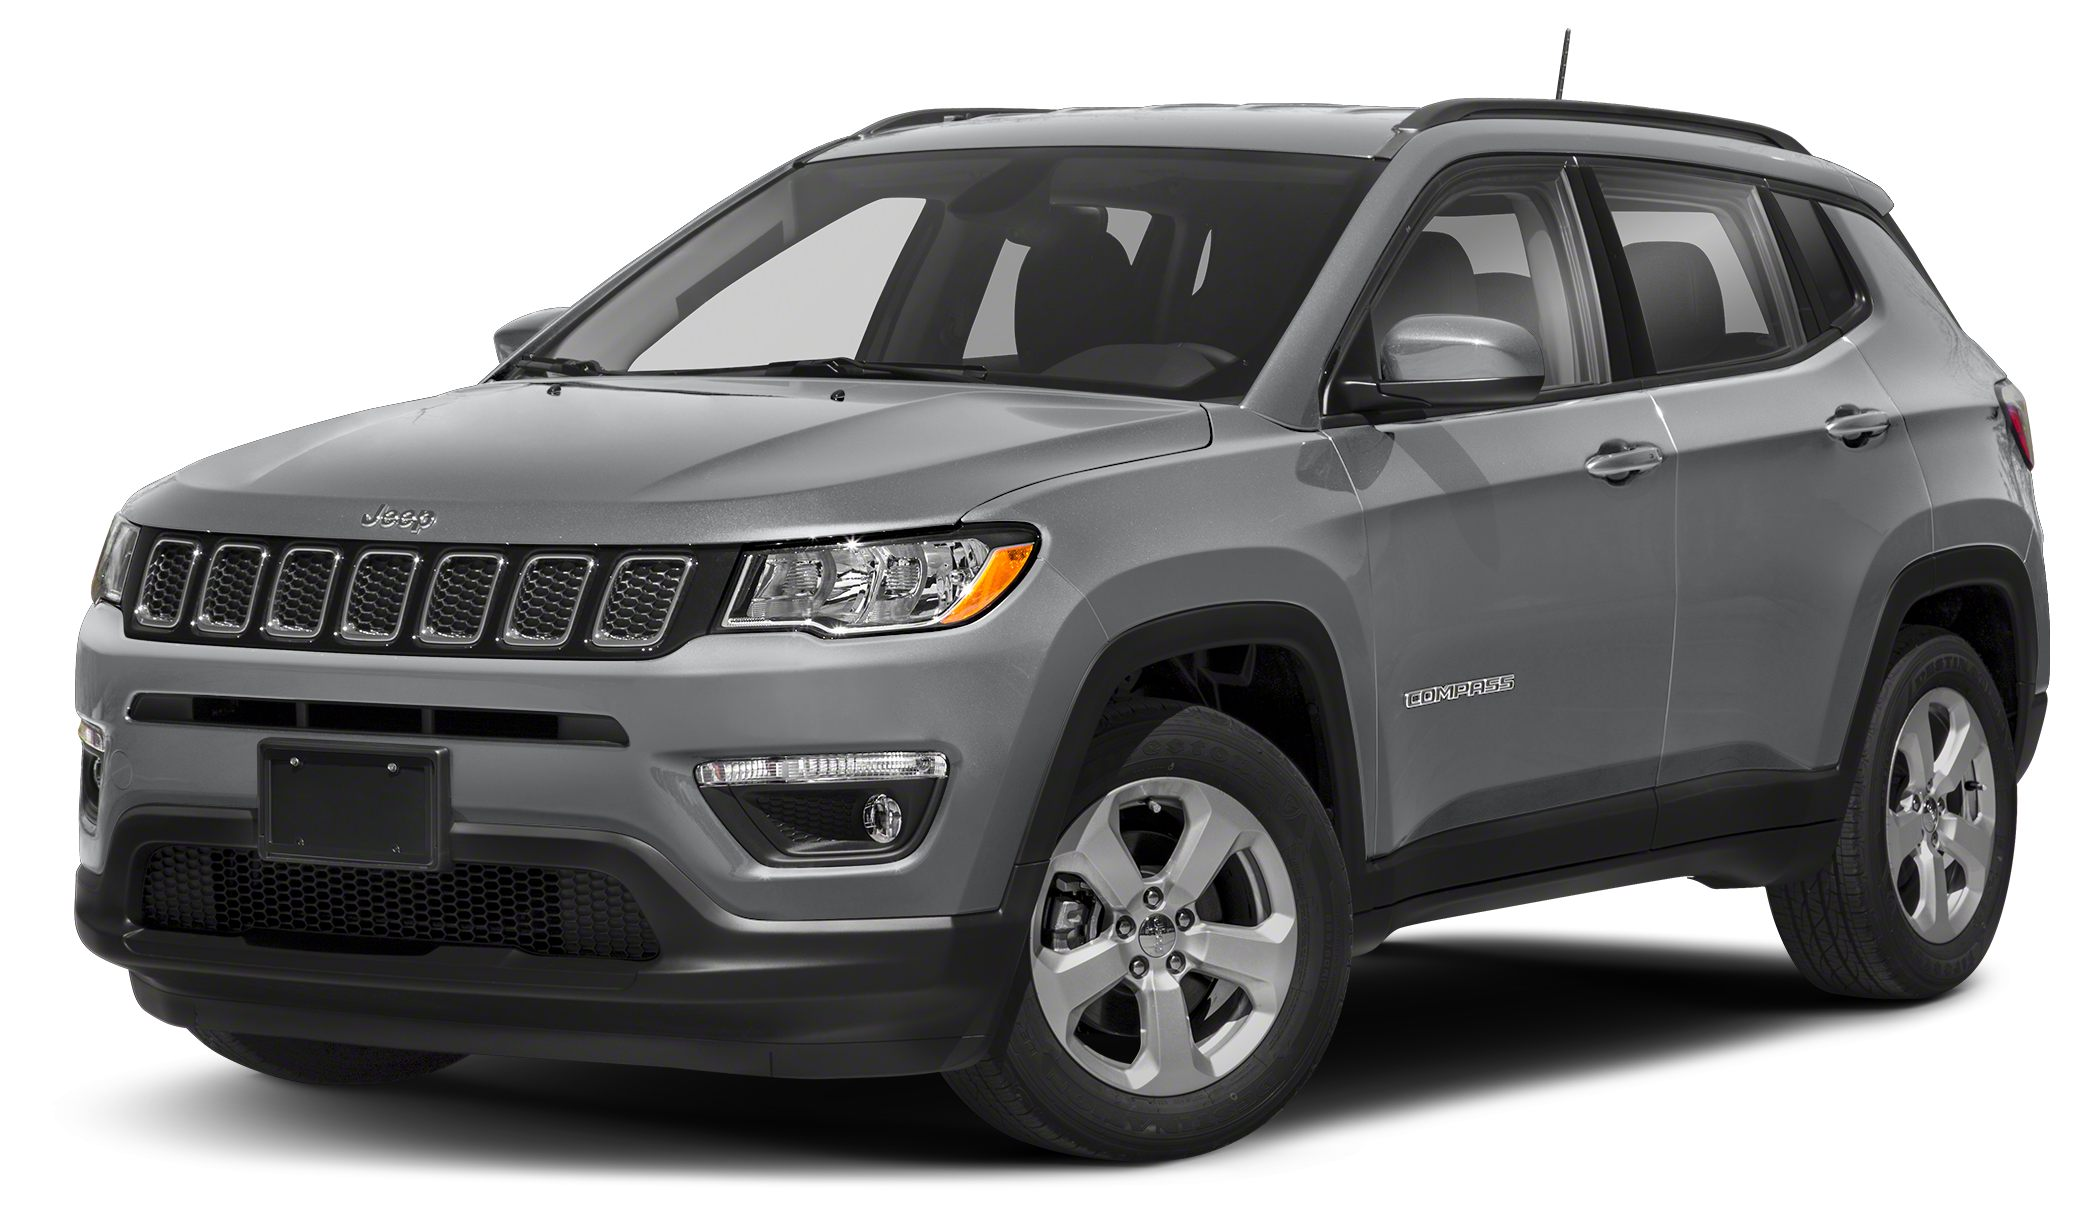 2018 Jeep Compass Limited FUEL EFFICIENT 30 MPG Hwy22 MPG City CARFAX 1-Owner LOW MILES - 126